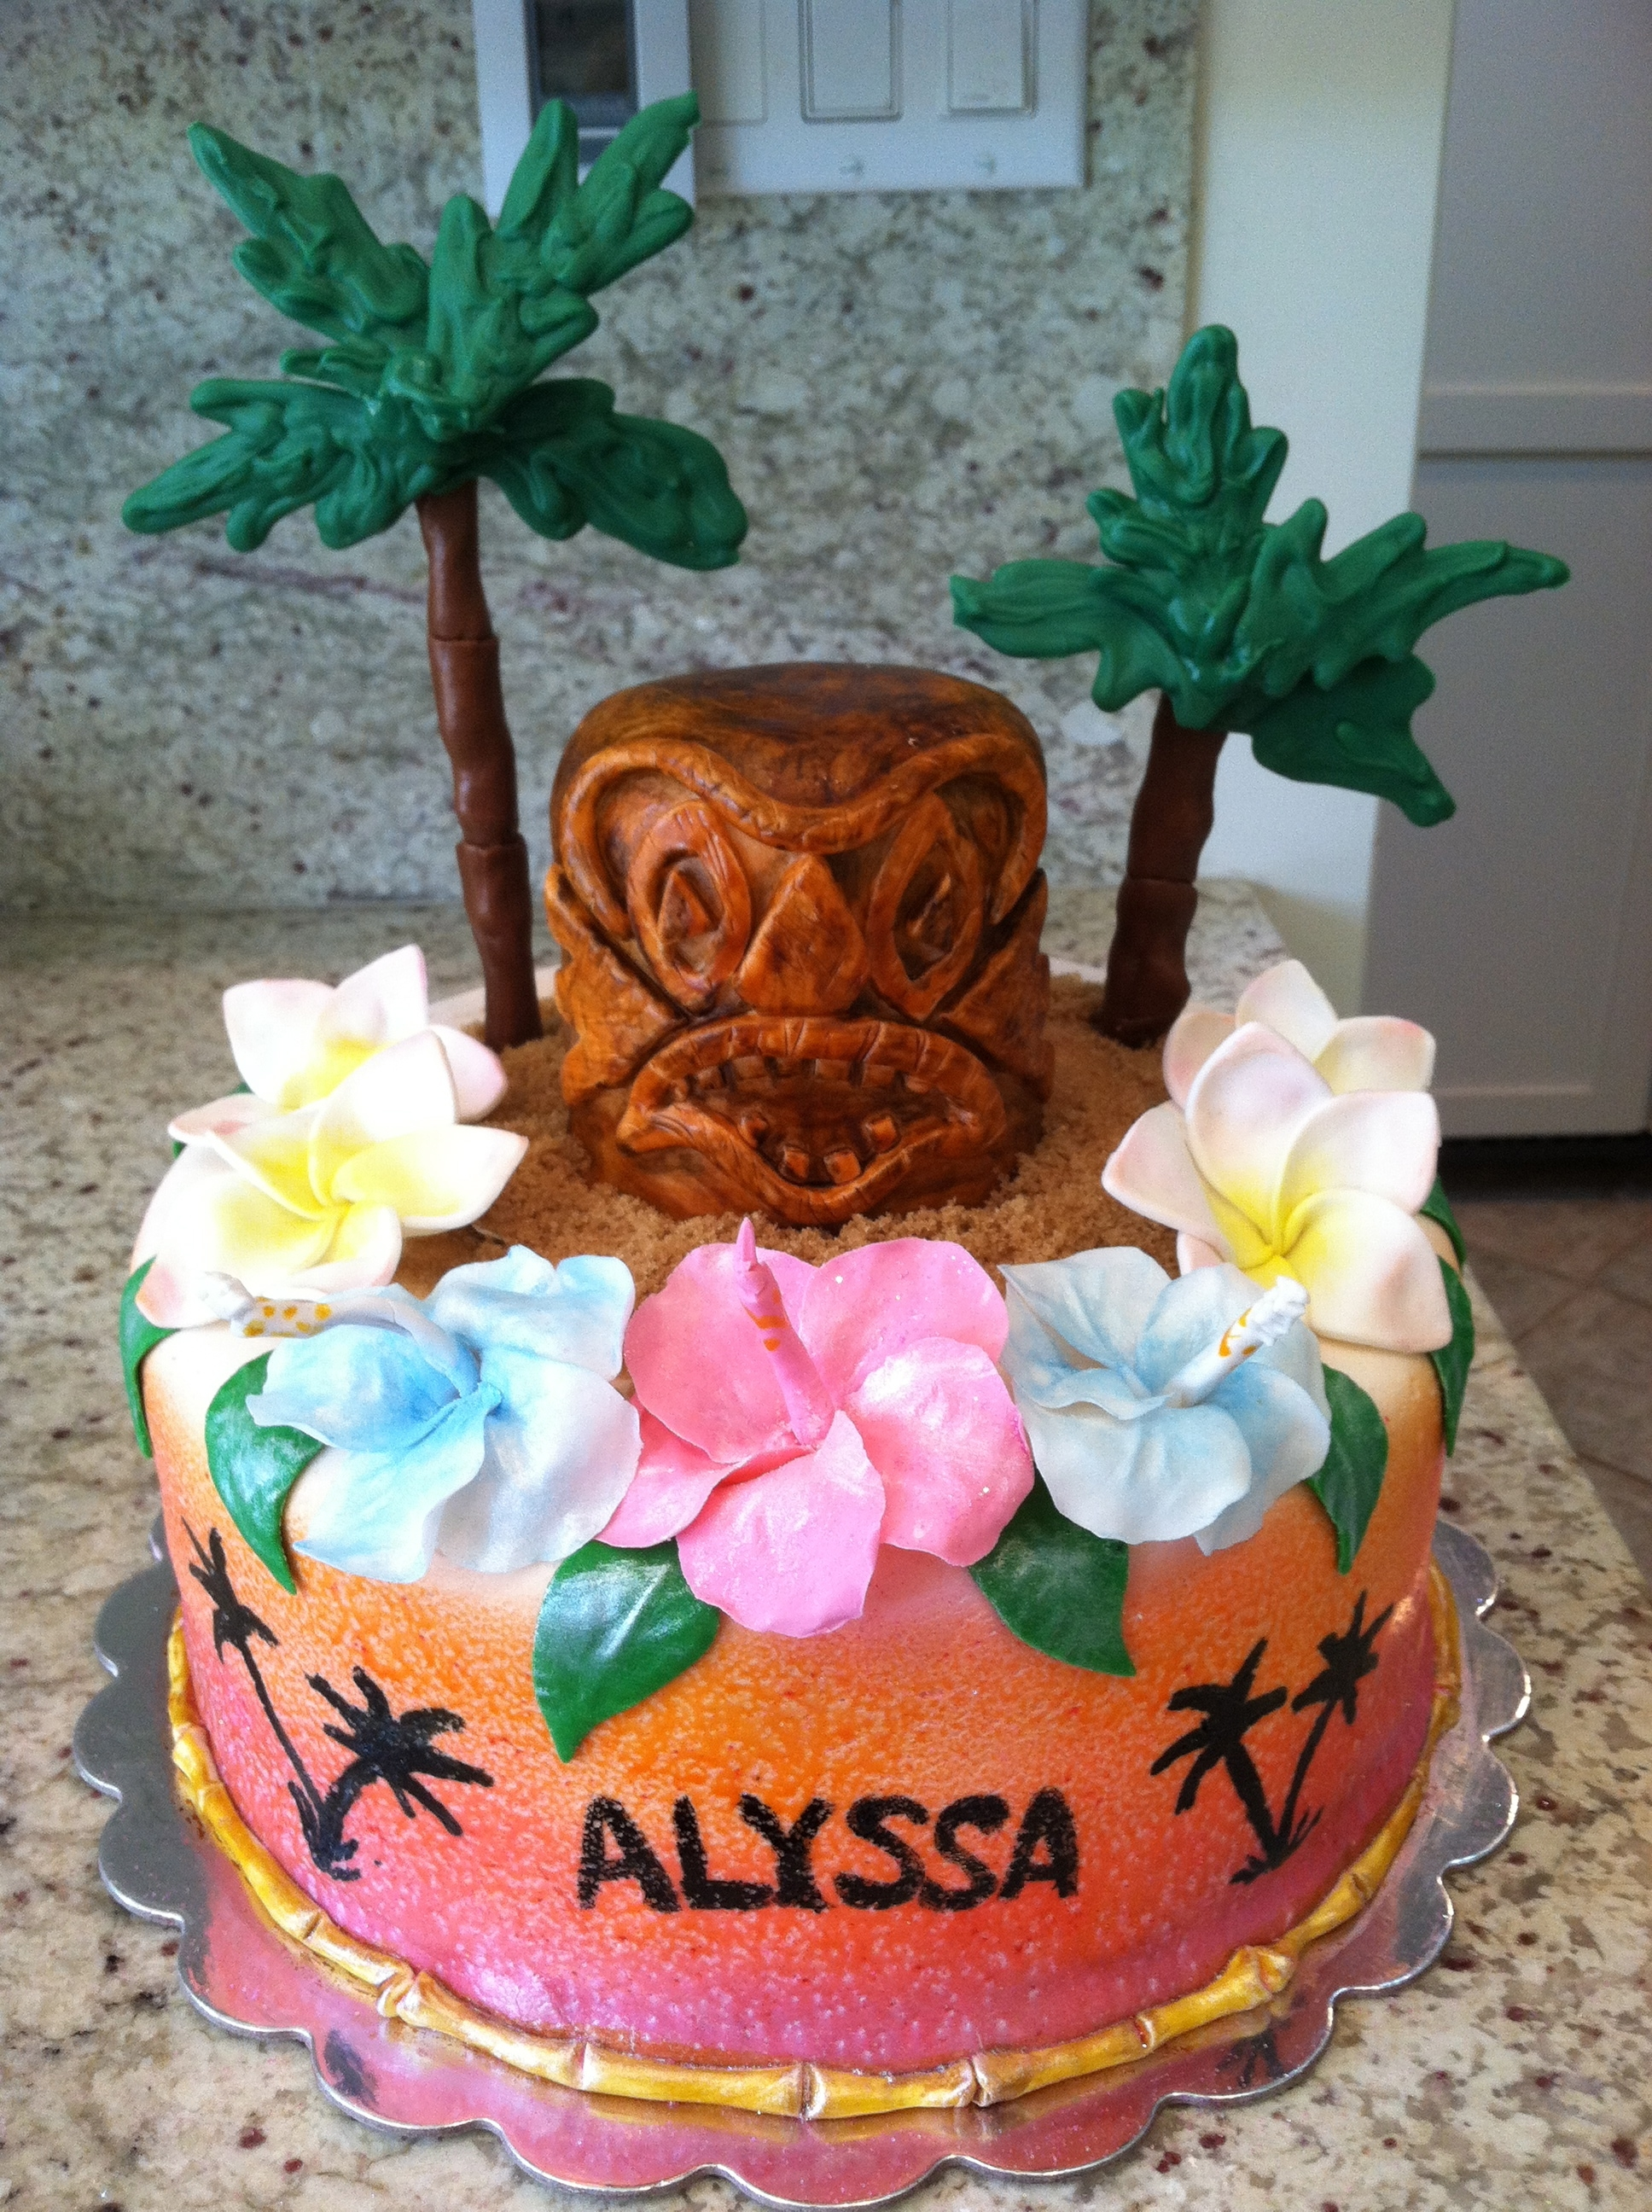 Remarkable 11 Hawaii Cakes For Girls 11Th Birthday Photo Hawaiian Themed Personalised Birthday Cards Petedlily Jamesorg